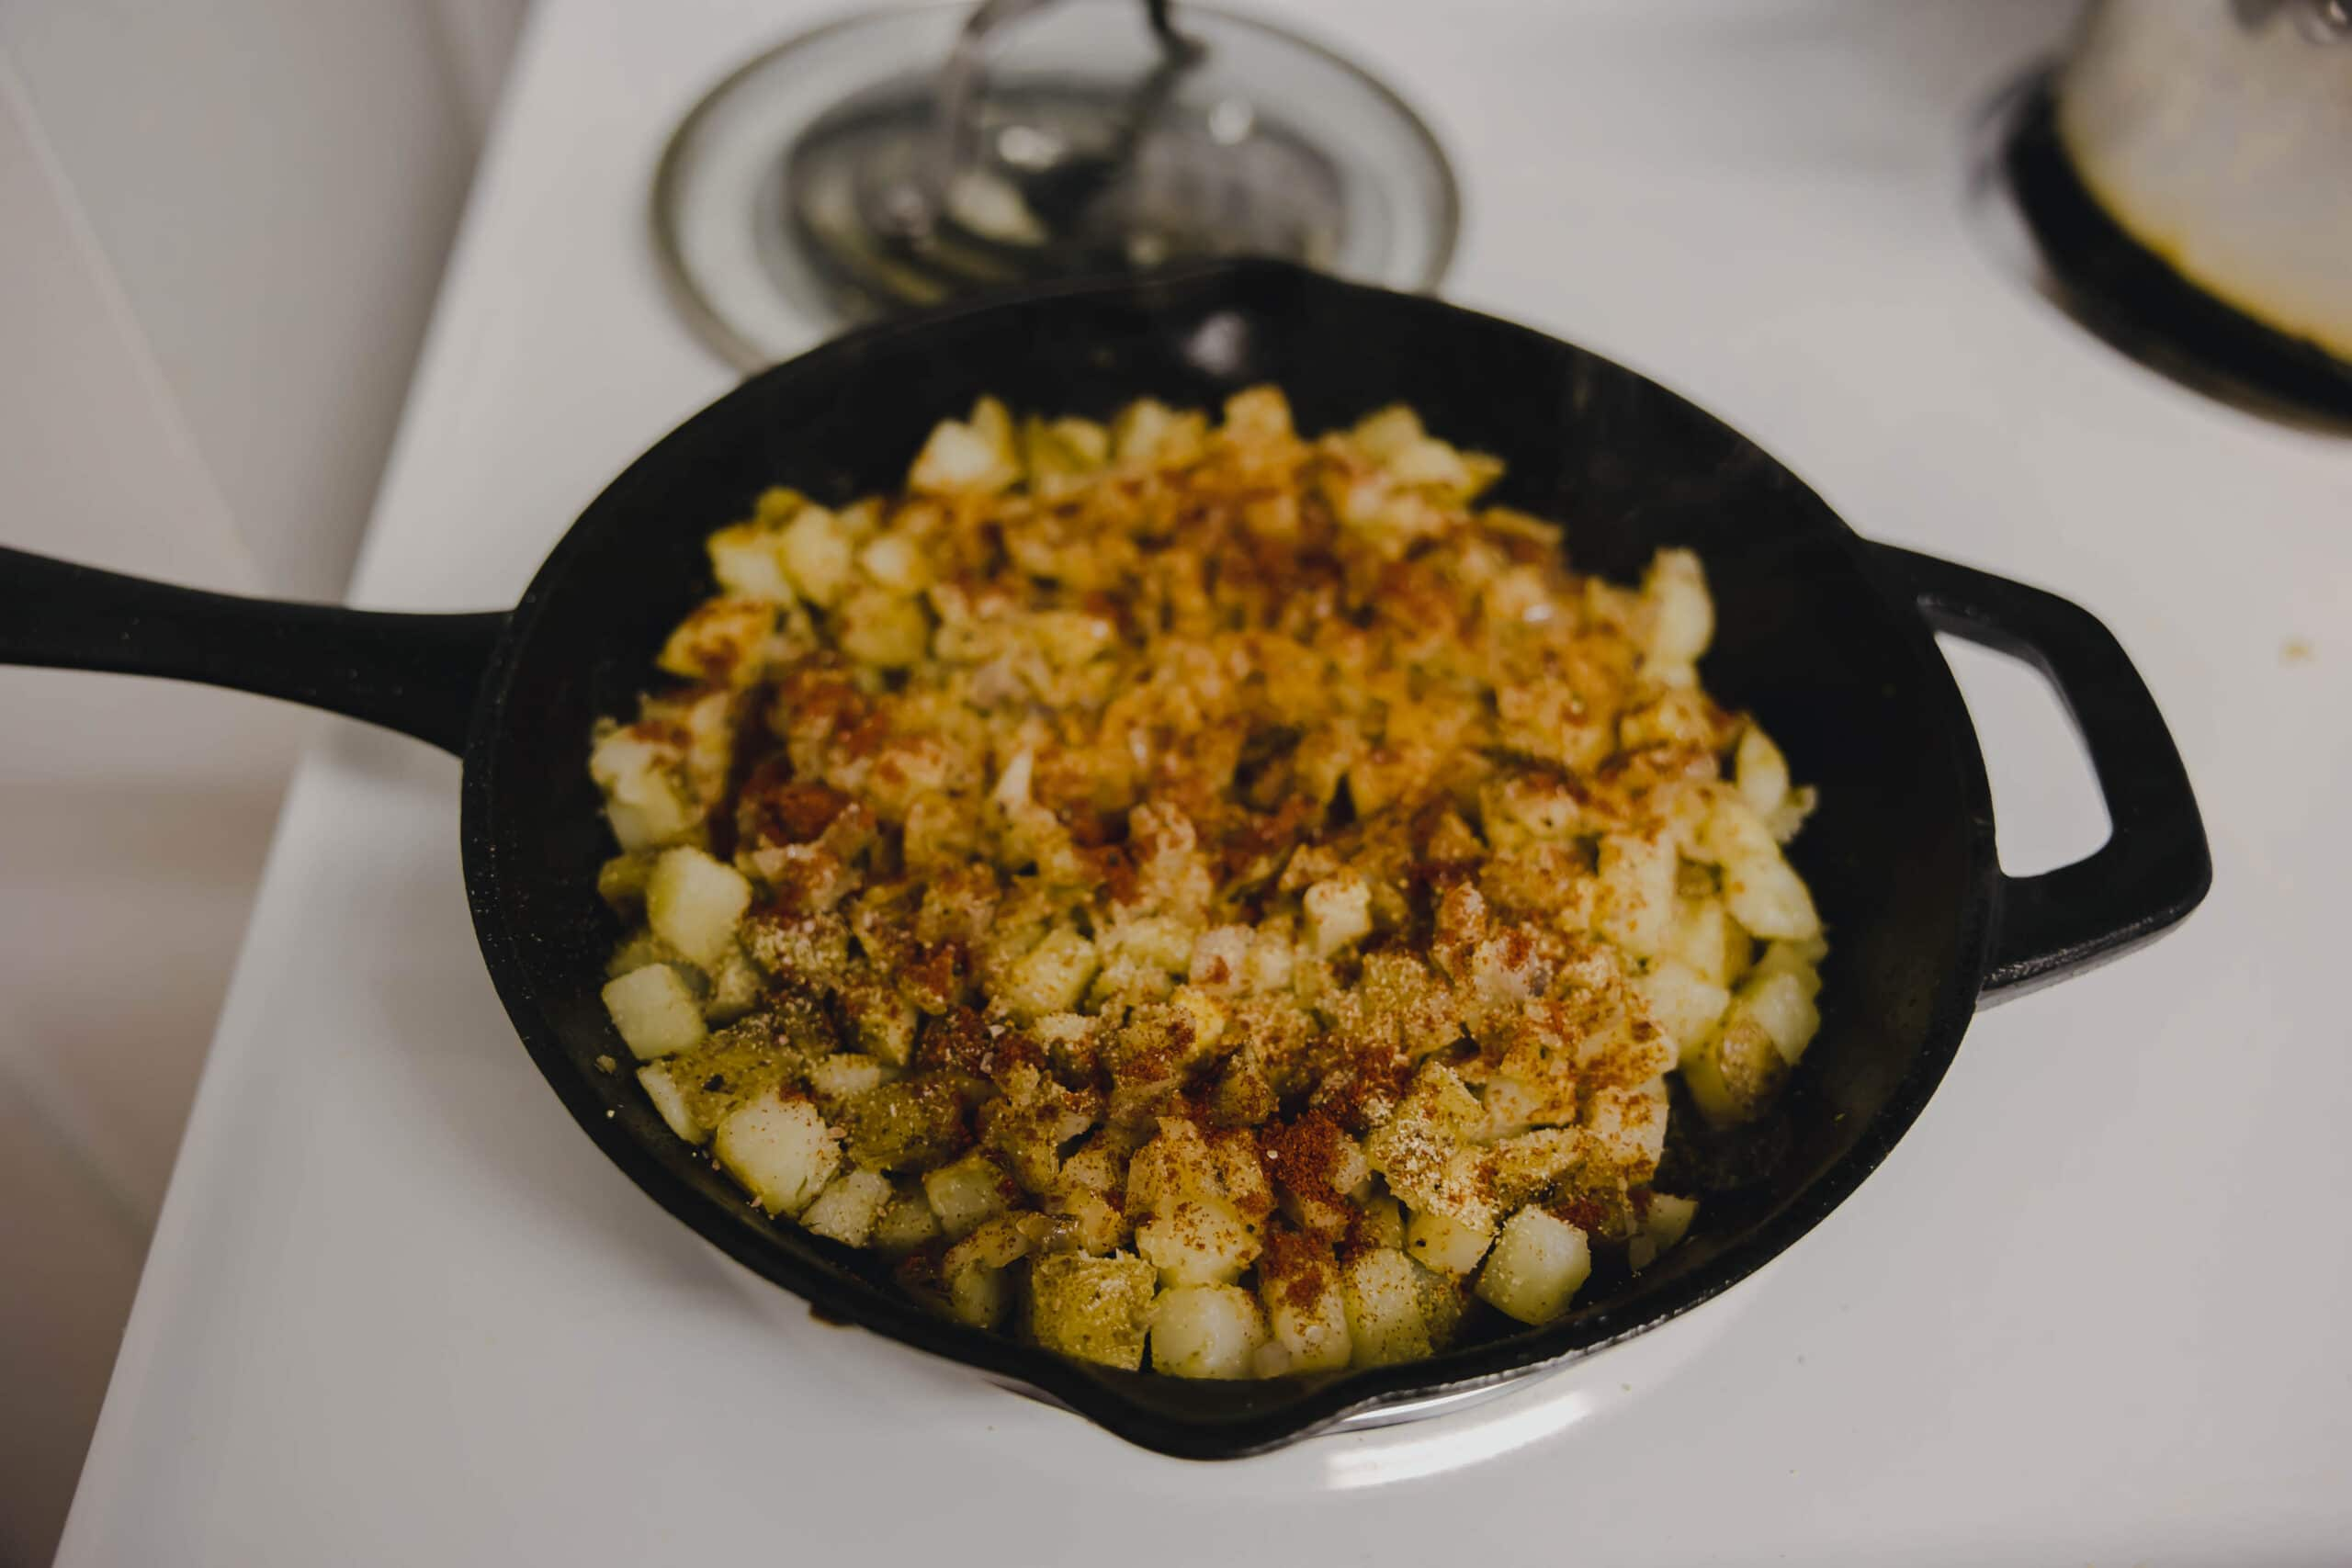 The diner style home fries, partially cooked, in a cast iron pan with seasonings on top